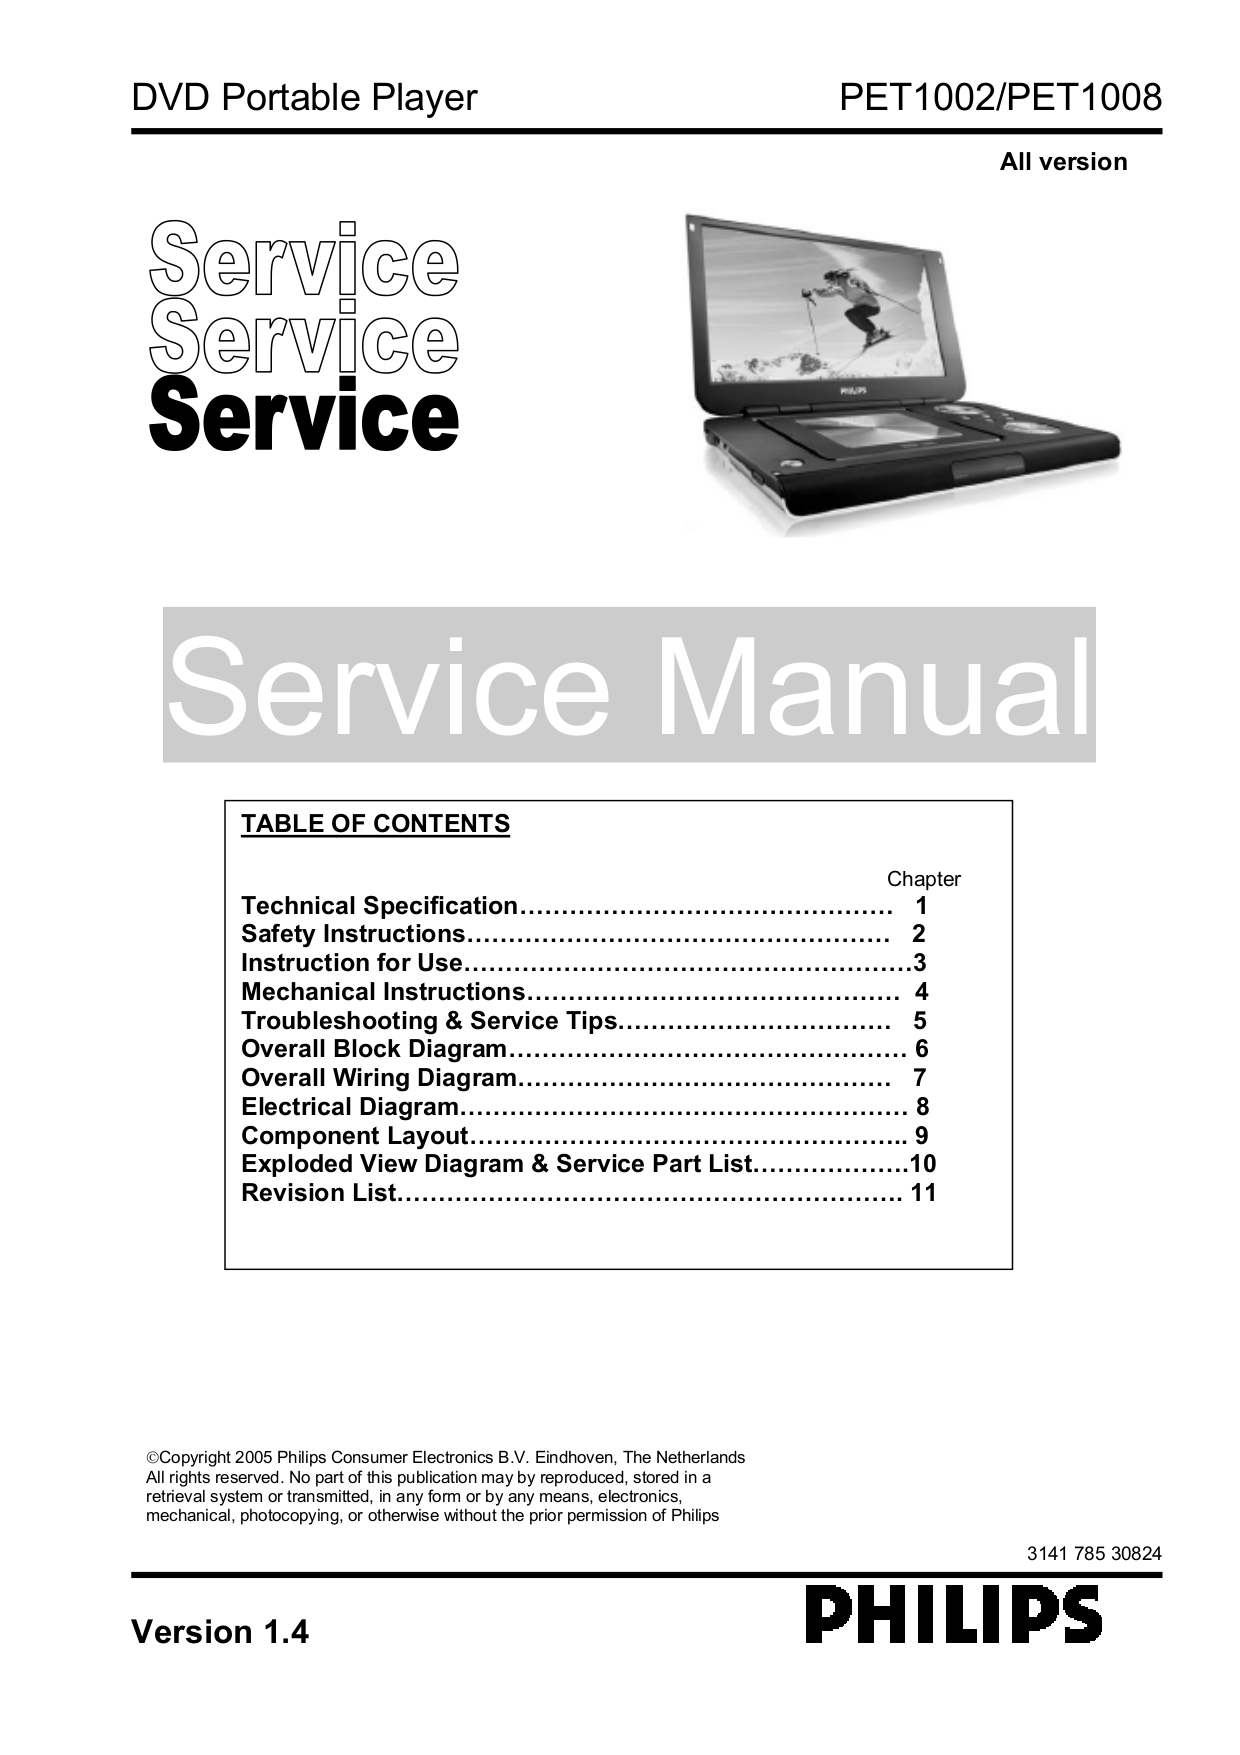 Download free pdf for philips pet1002 portable dvd player manual.